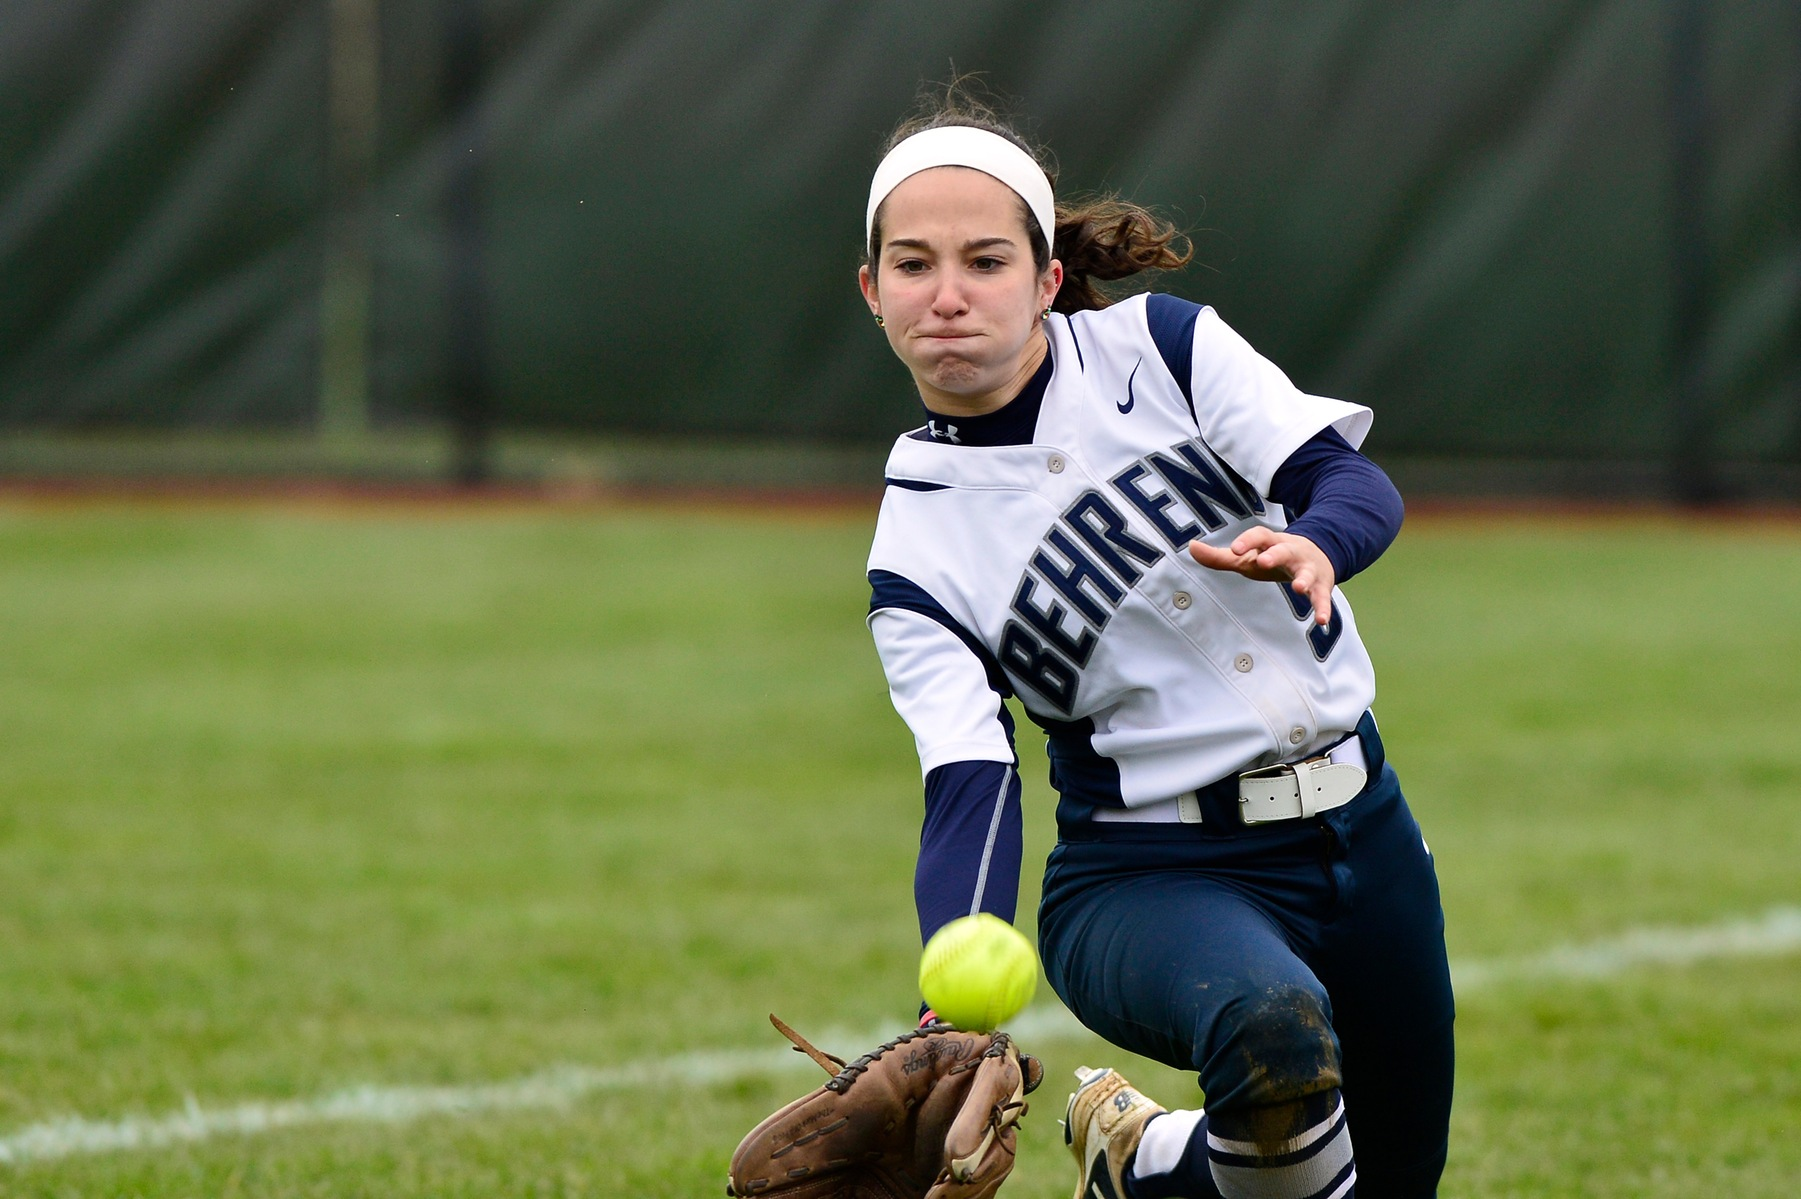 Lions Sweep Mt. Aloysius; Hauser Gets 100th Hit